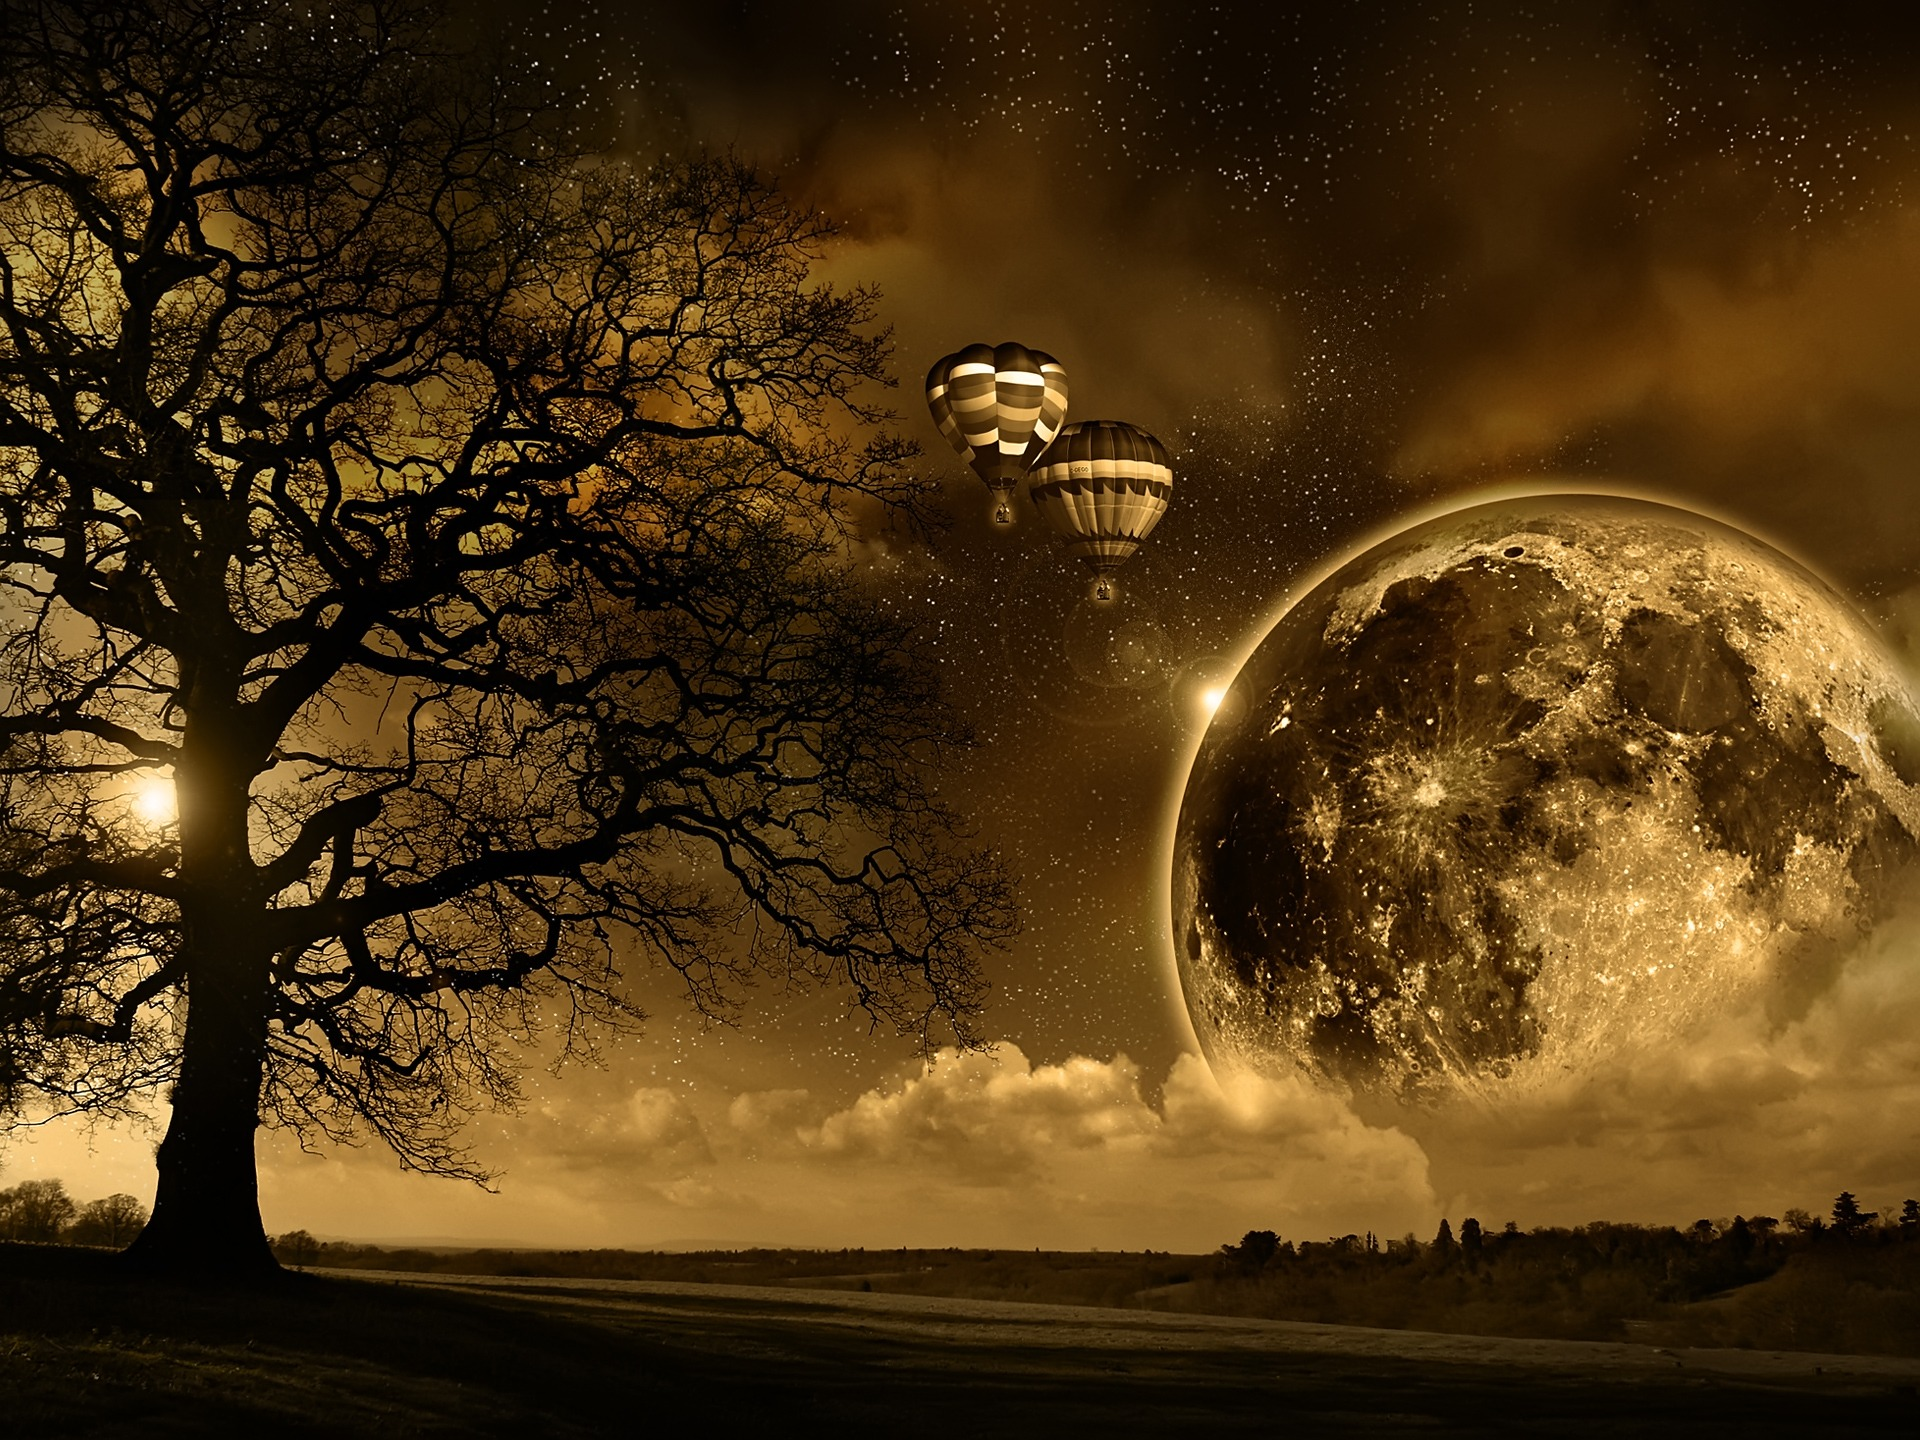 magic moon wallpaper abstract 3d wallpapers in jpg format for free